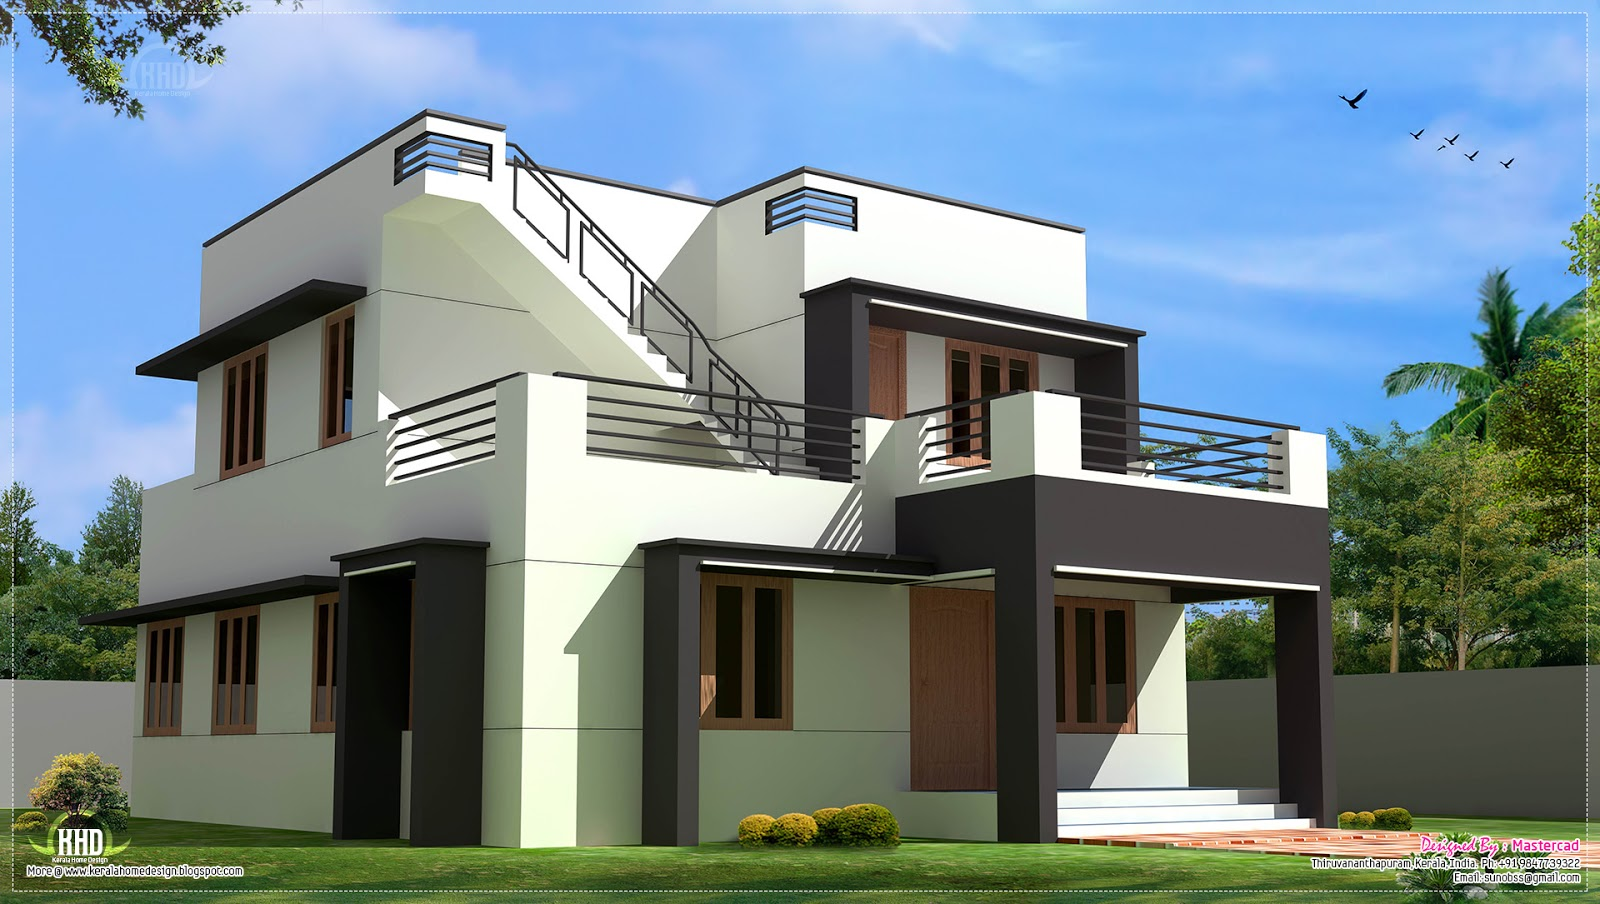 Modern house design in 1700 kerala home design for Home floor design